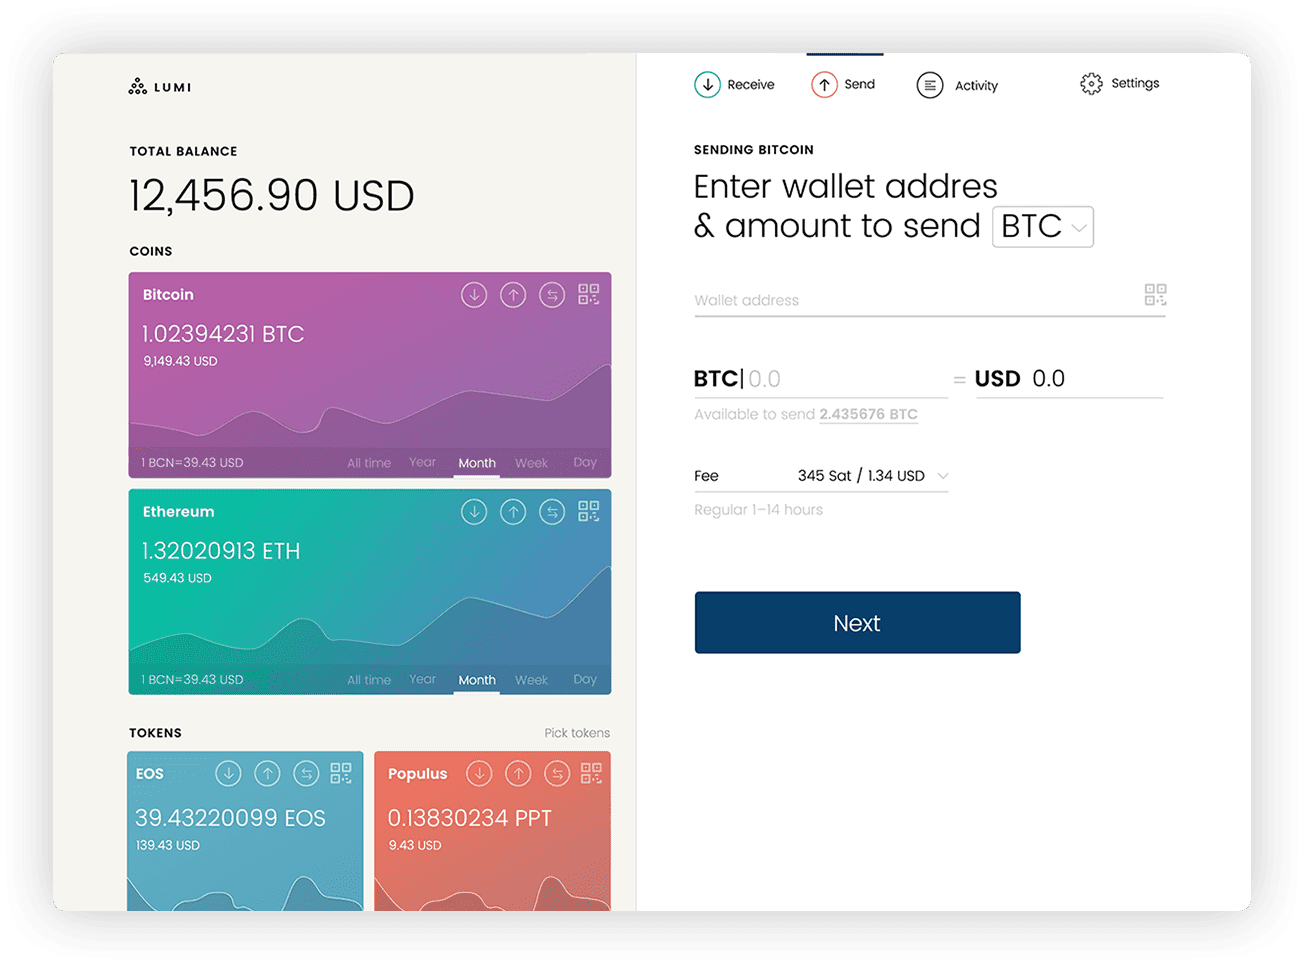 lumi example of crypto wallet on the web